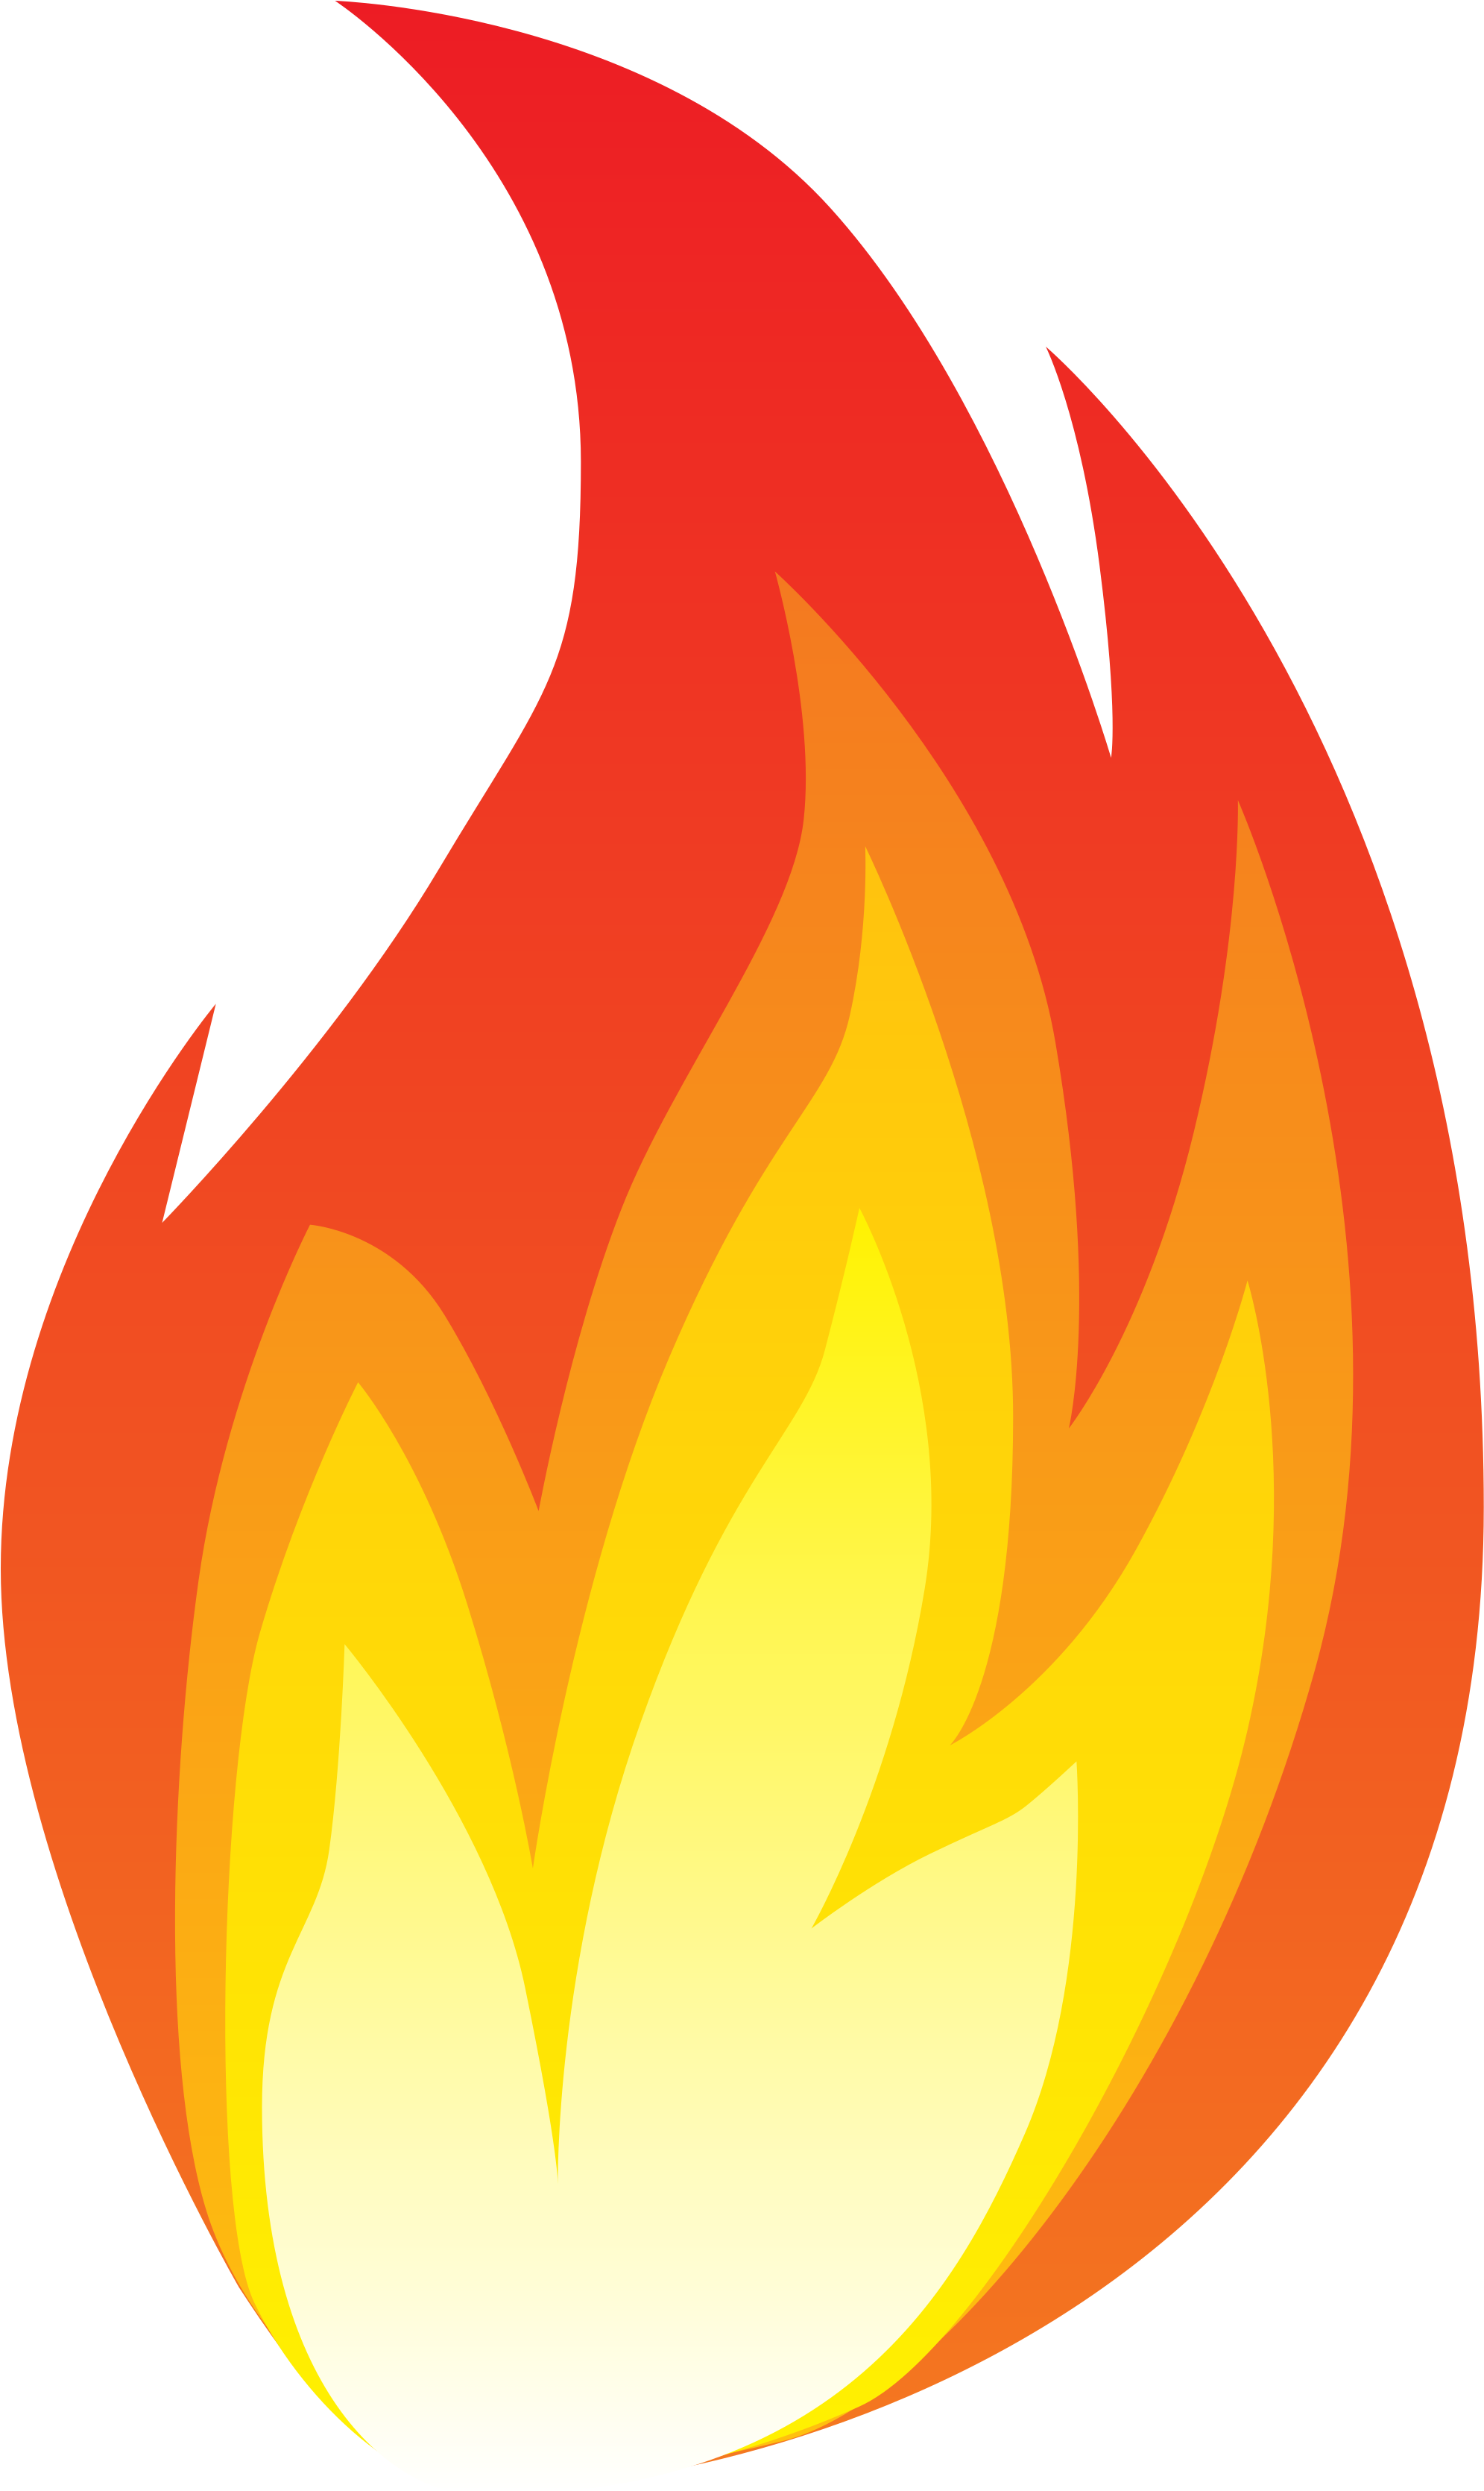 Flame Clipart Line Fire.